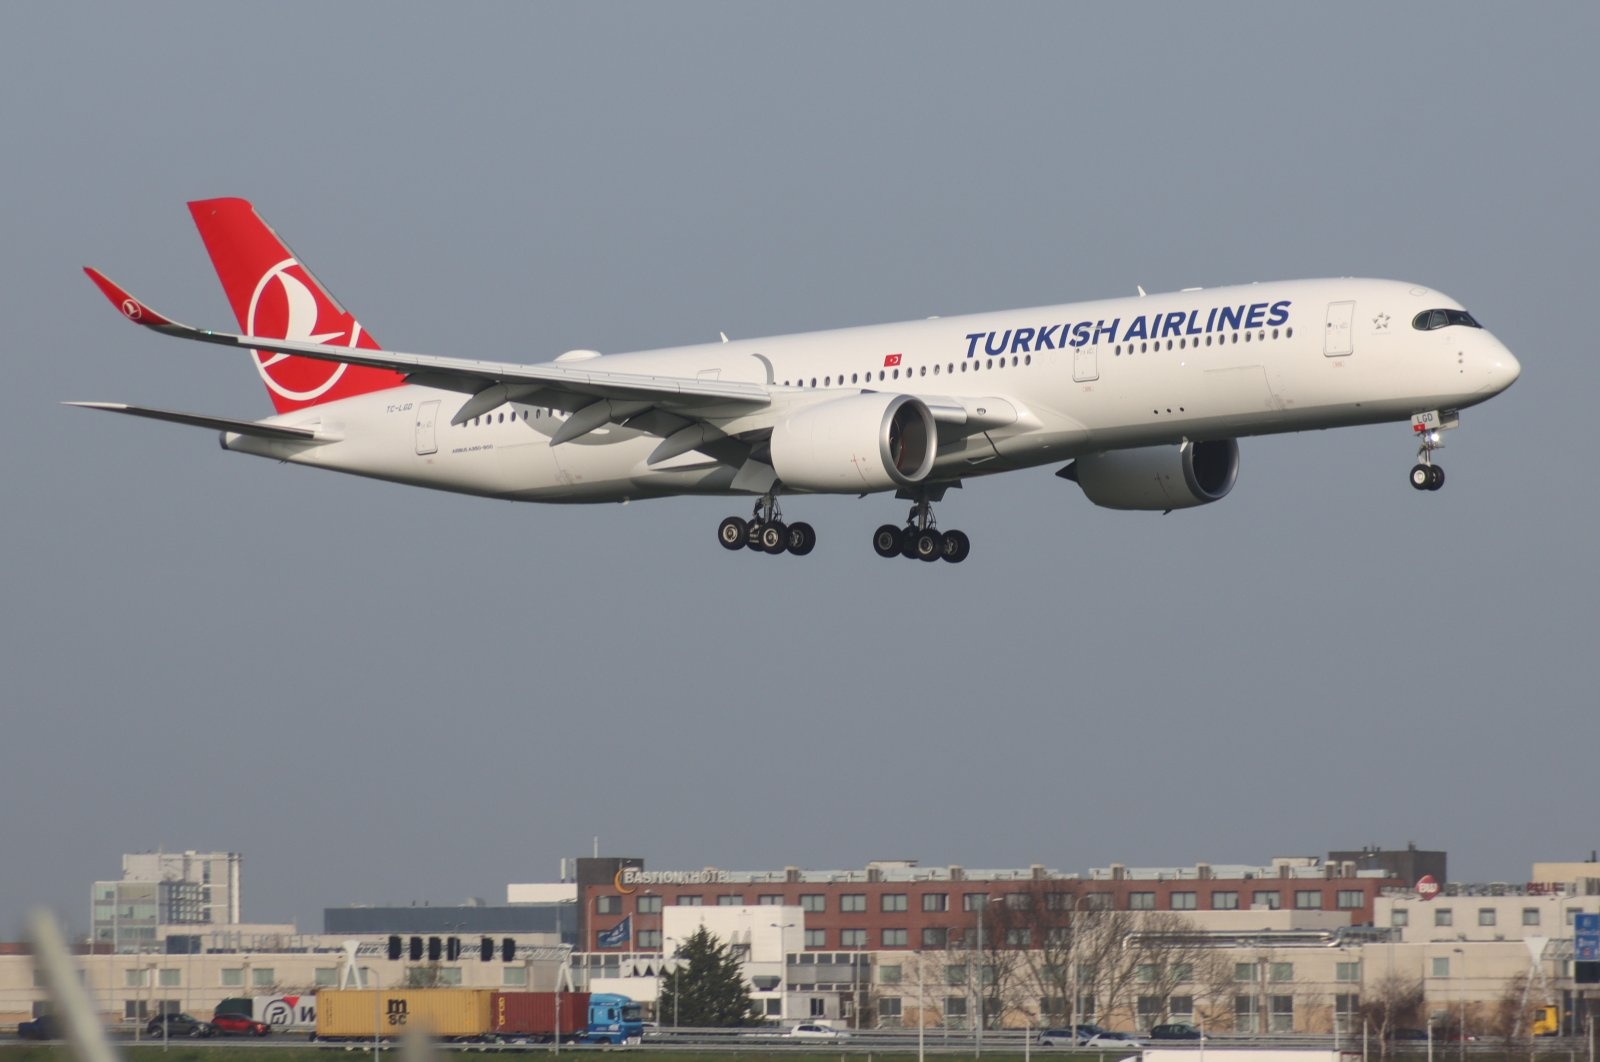 A Turkish Airlines Airbus A350-900 aircraft lands at Schiphol Airport, Amsterdam, the Netherlands, April 1, 2021 (Getty Images)